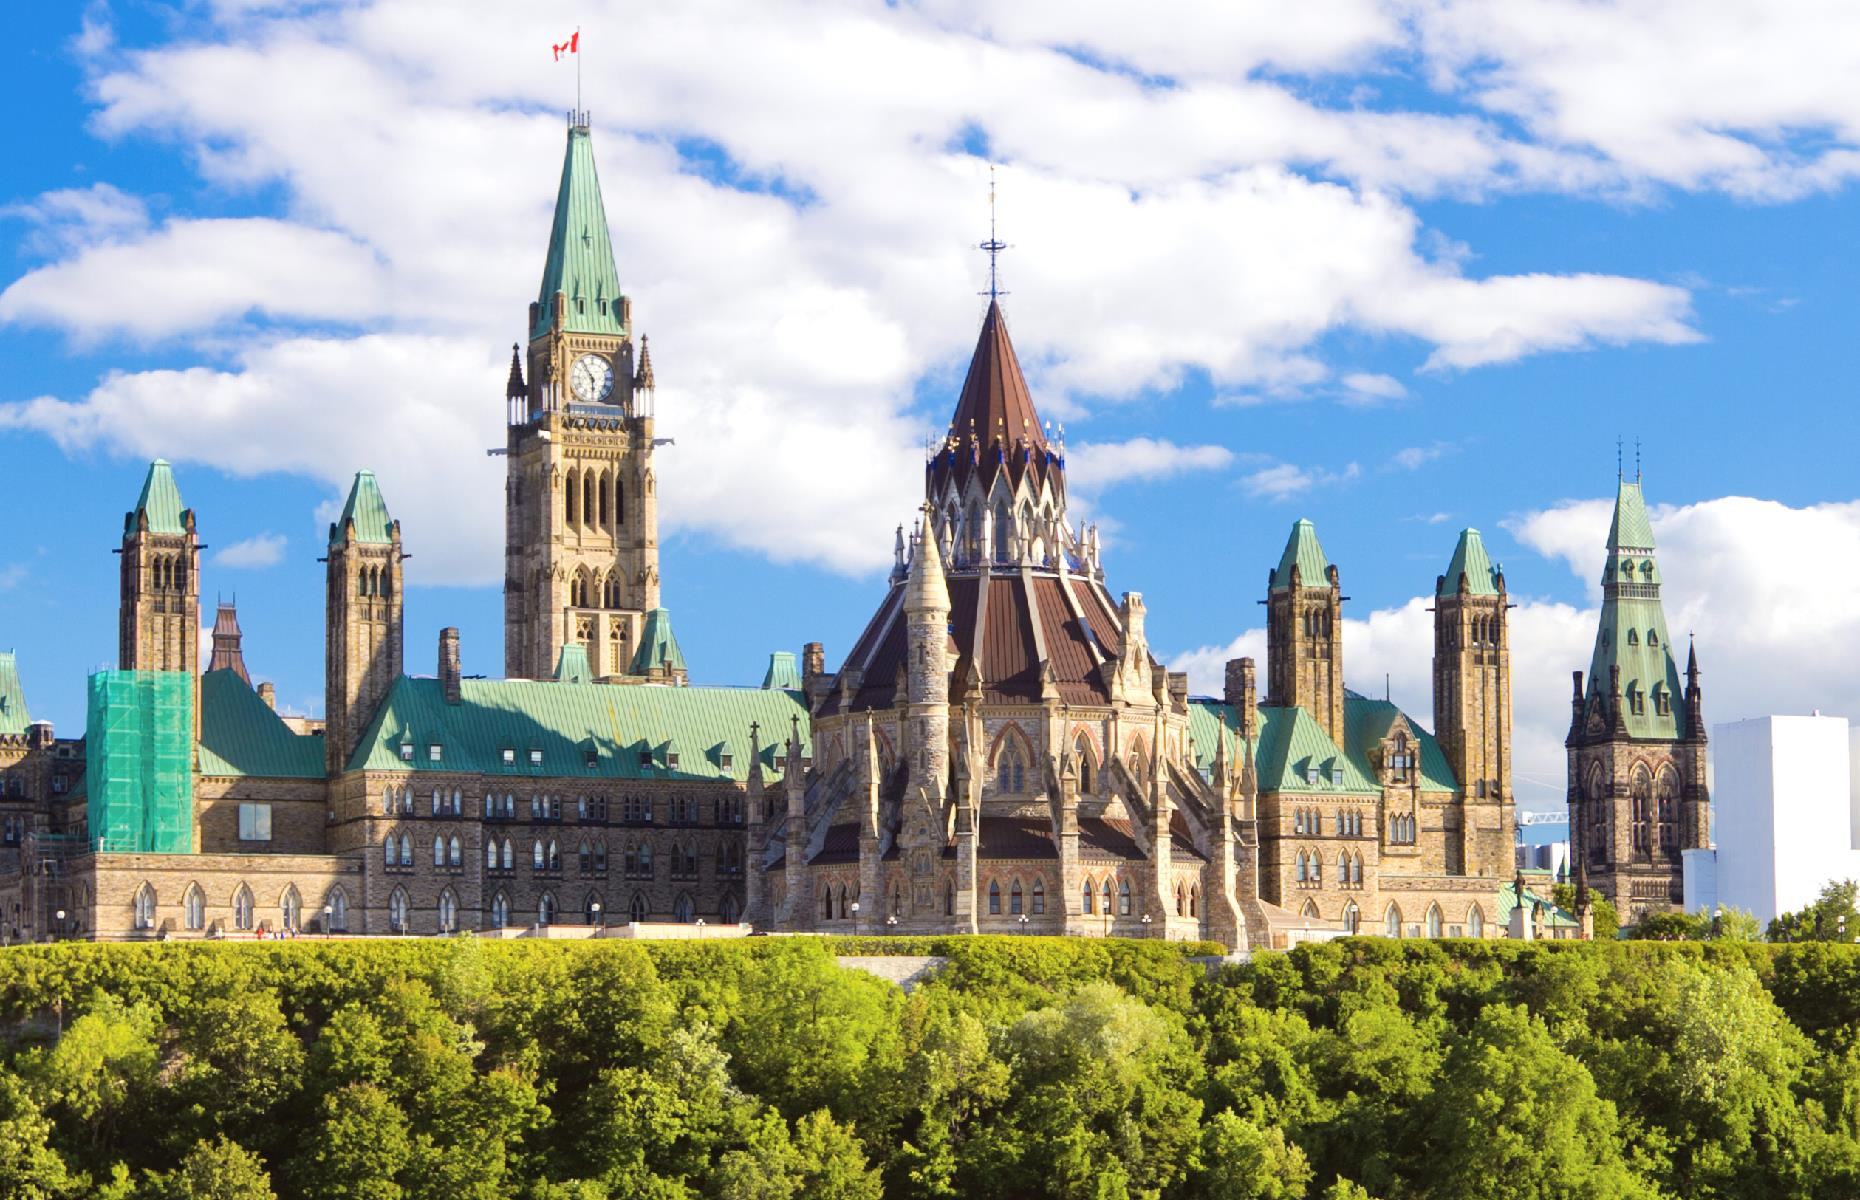 Slide 11 of 32: Against the odds, the Library of Parliament was saved as its mighty iron doors were closed. The other buildings were completed again by 1927 and today they still brood over Canada's capital. The Library of Parliament remains the site's crowning jewel.